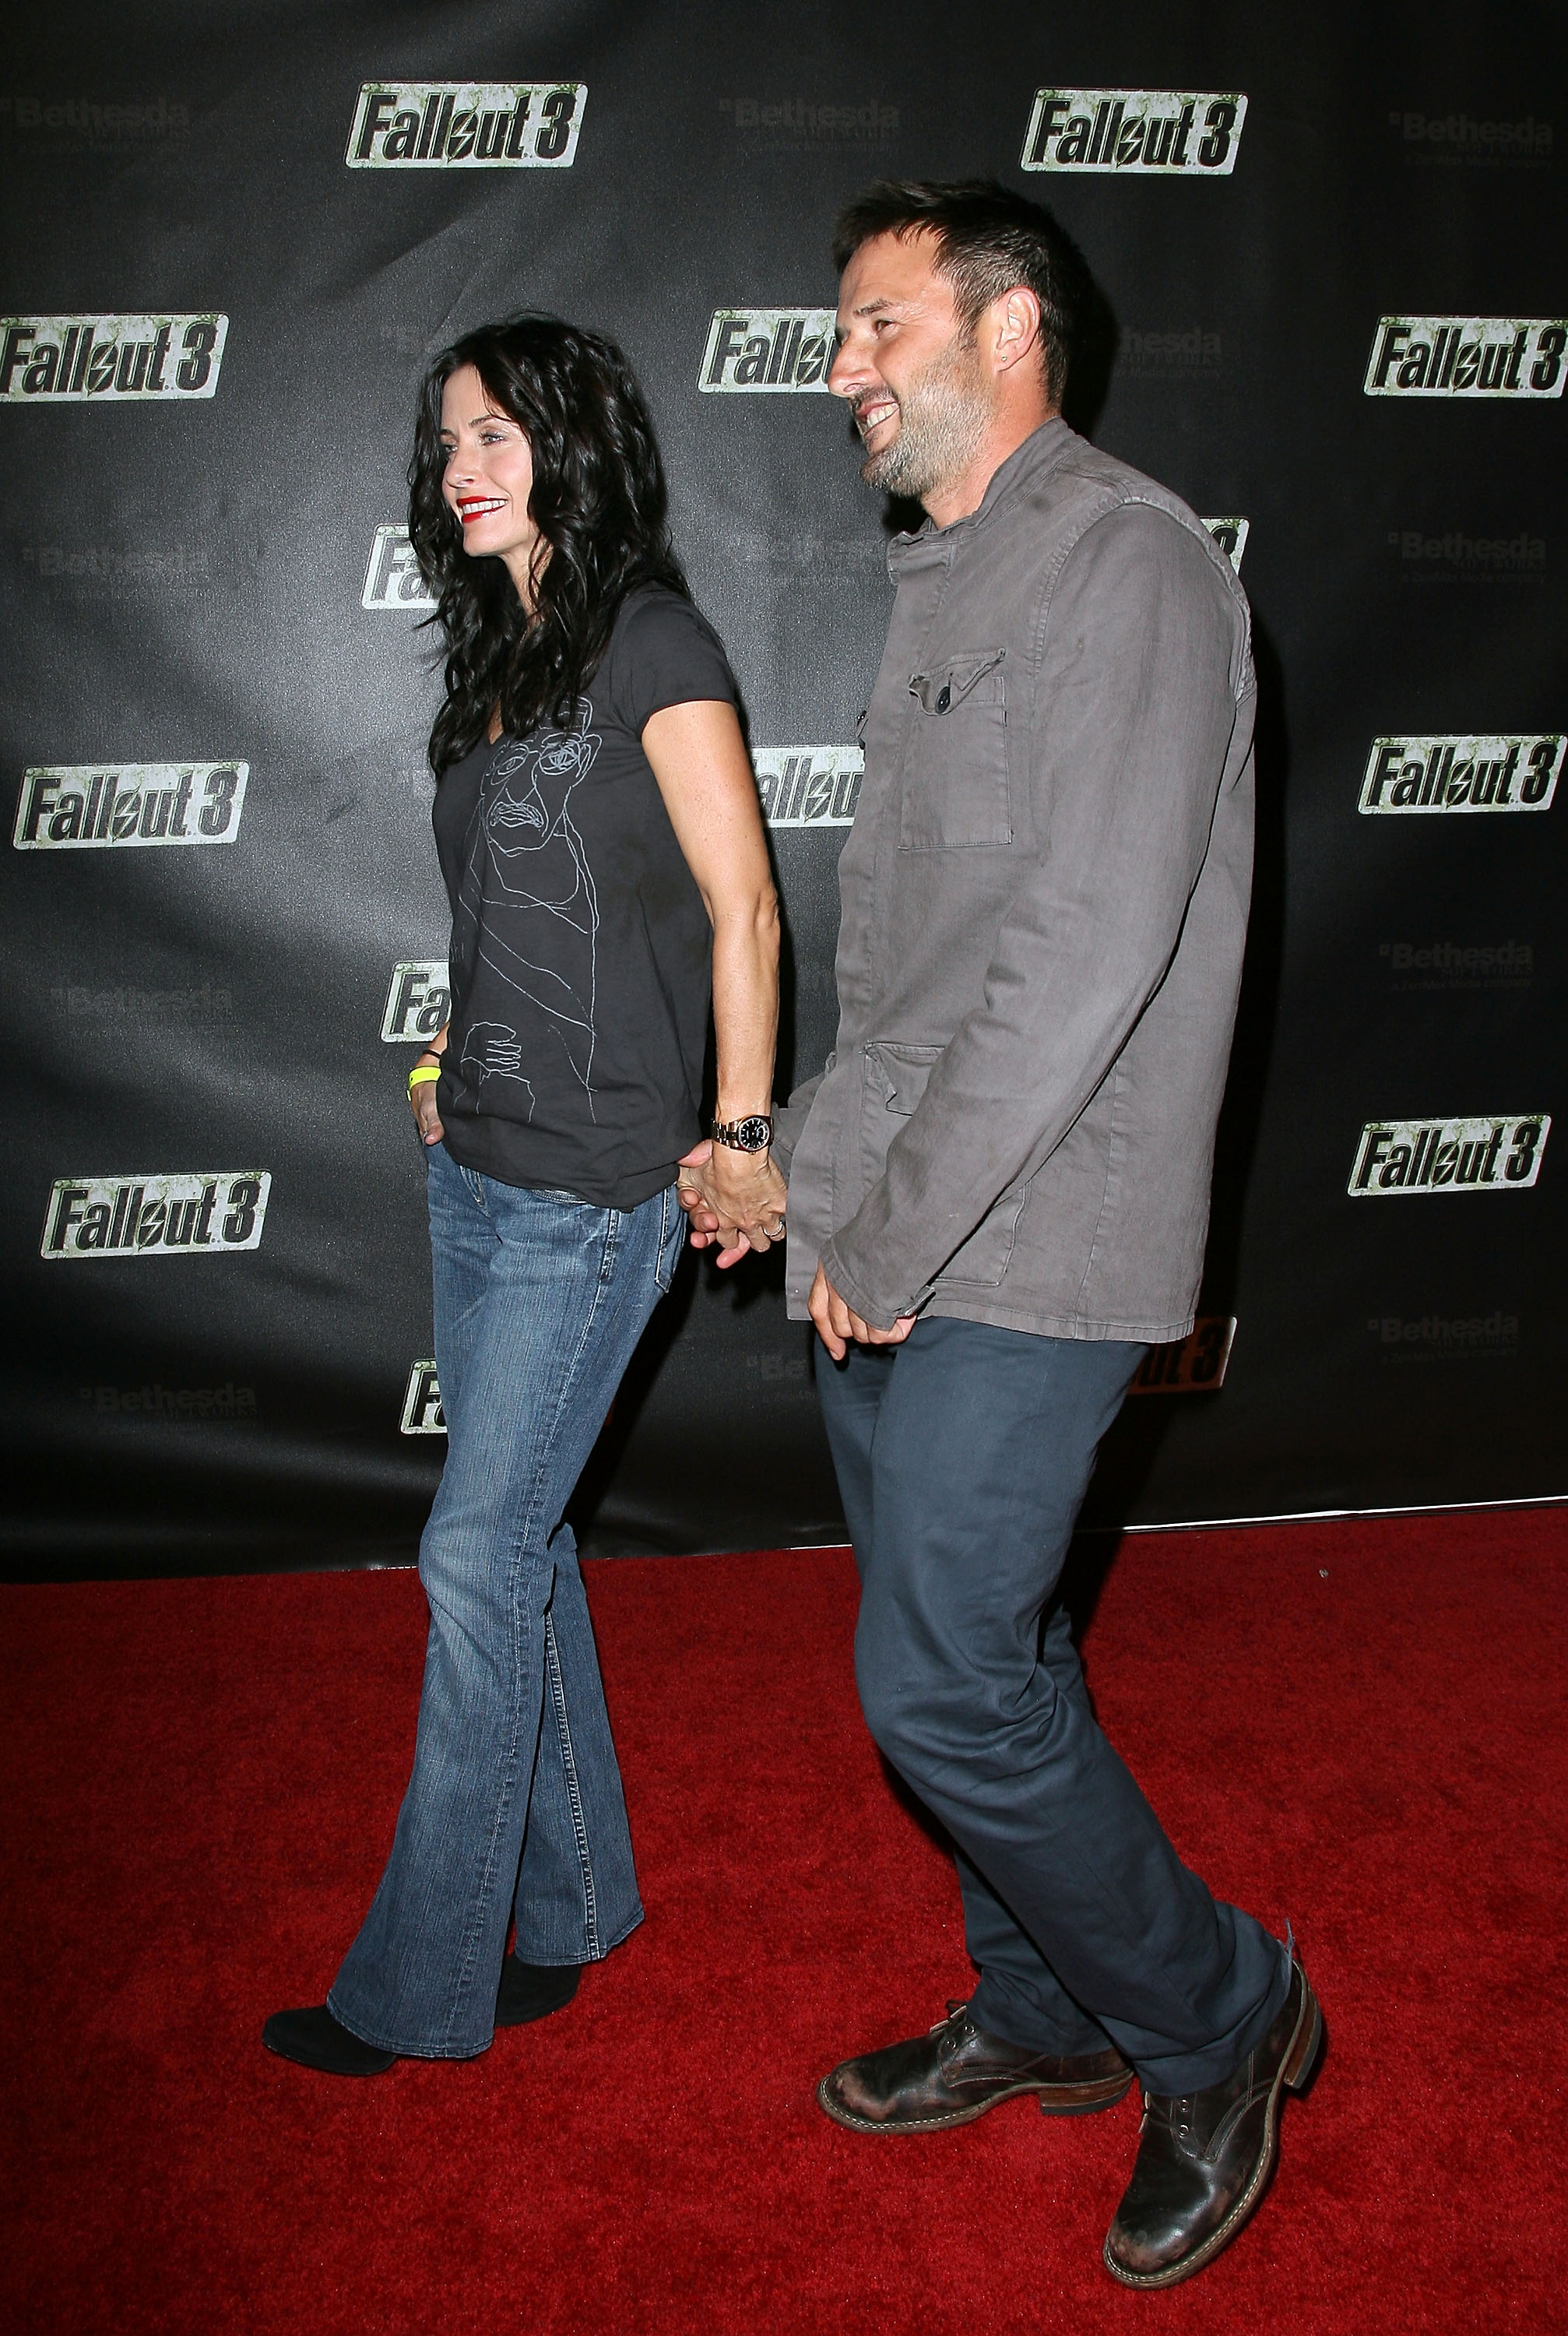 55410_Celebutopia-Courteney_Cox-Launch_Party_for_Fallout_3_videogame-07_122_1083lo.jpg